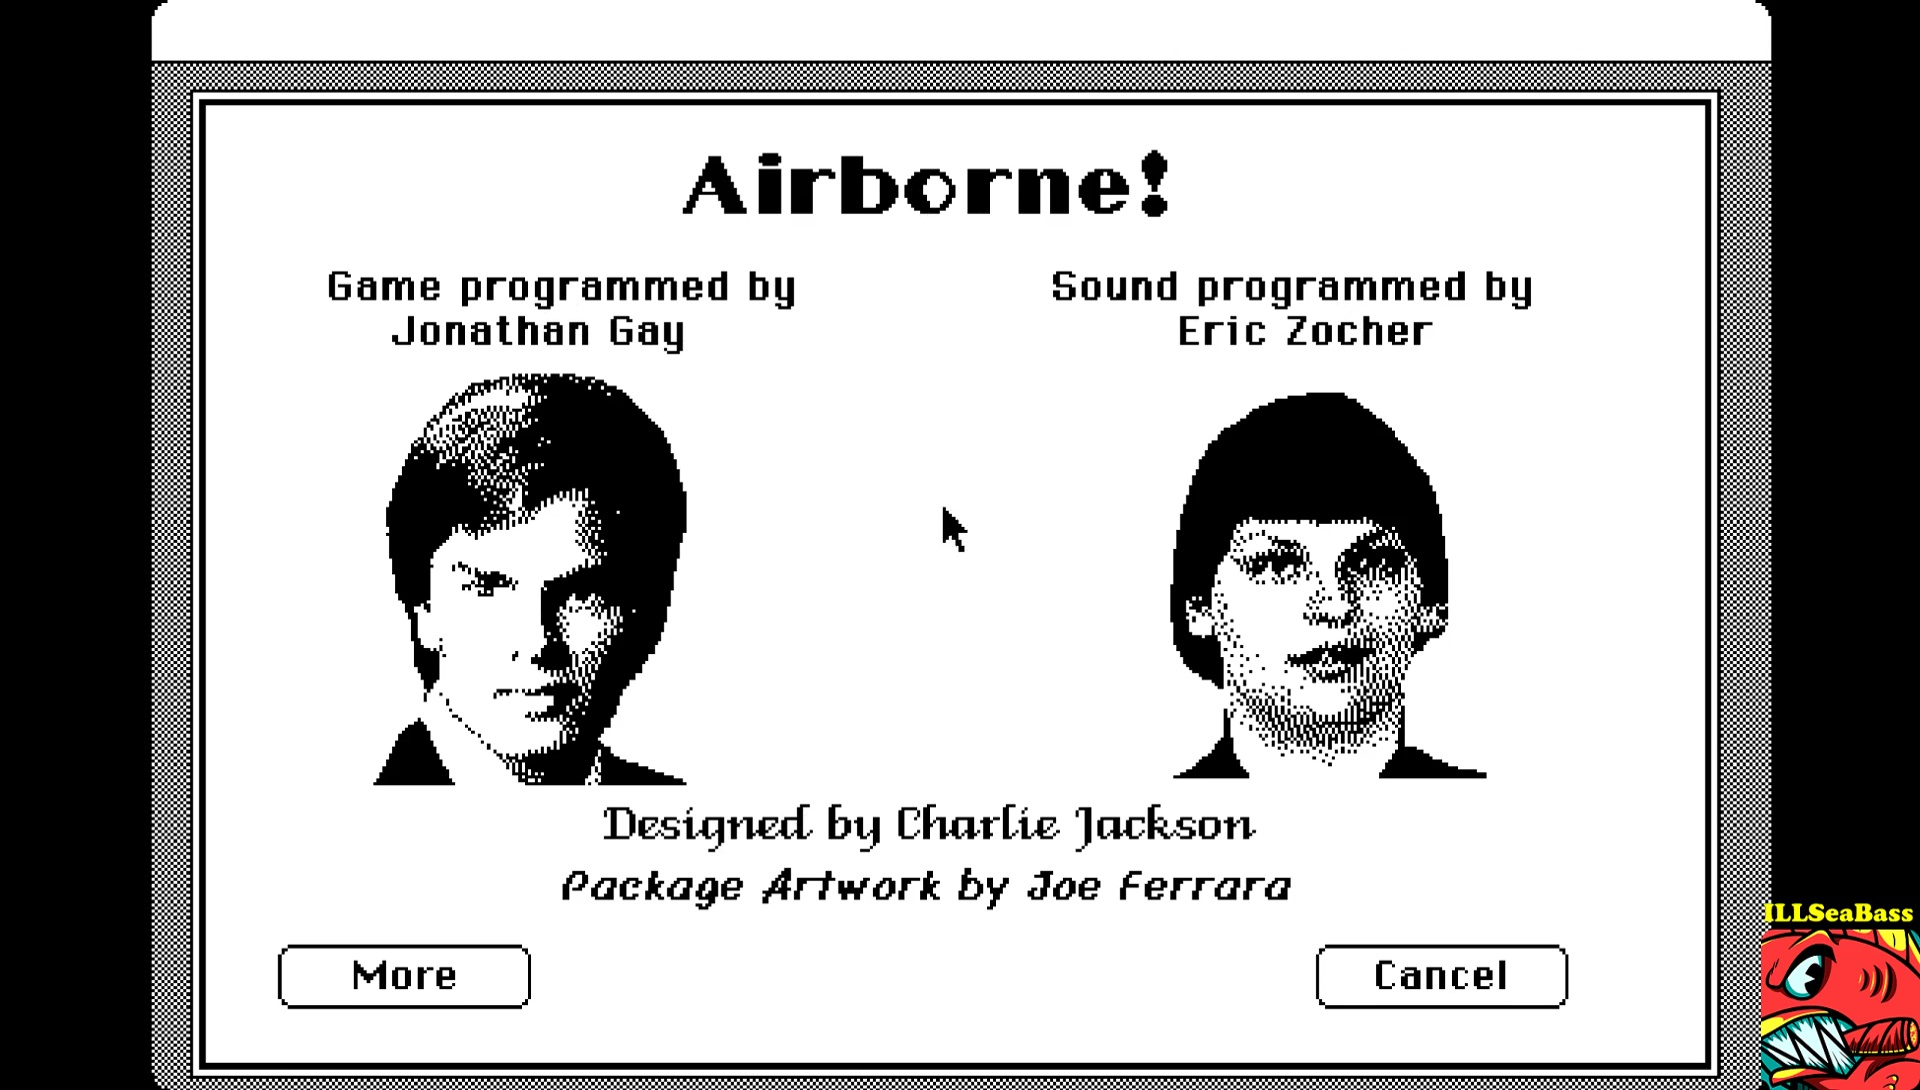 ILLSeaBass: Airborne! [Beginner] (Mac OS Emulated) 211 points on 2017-05-20 12:36:19